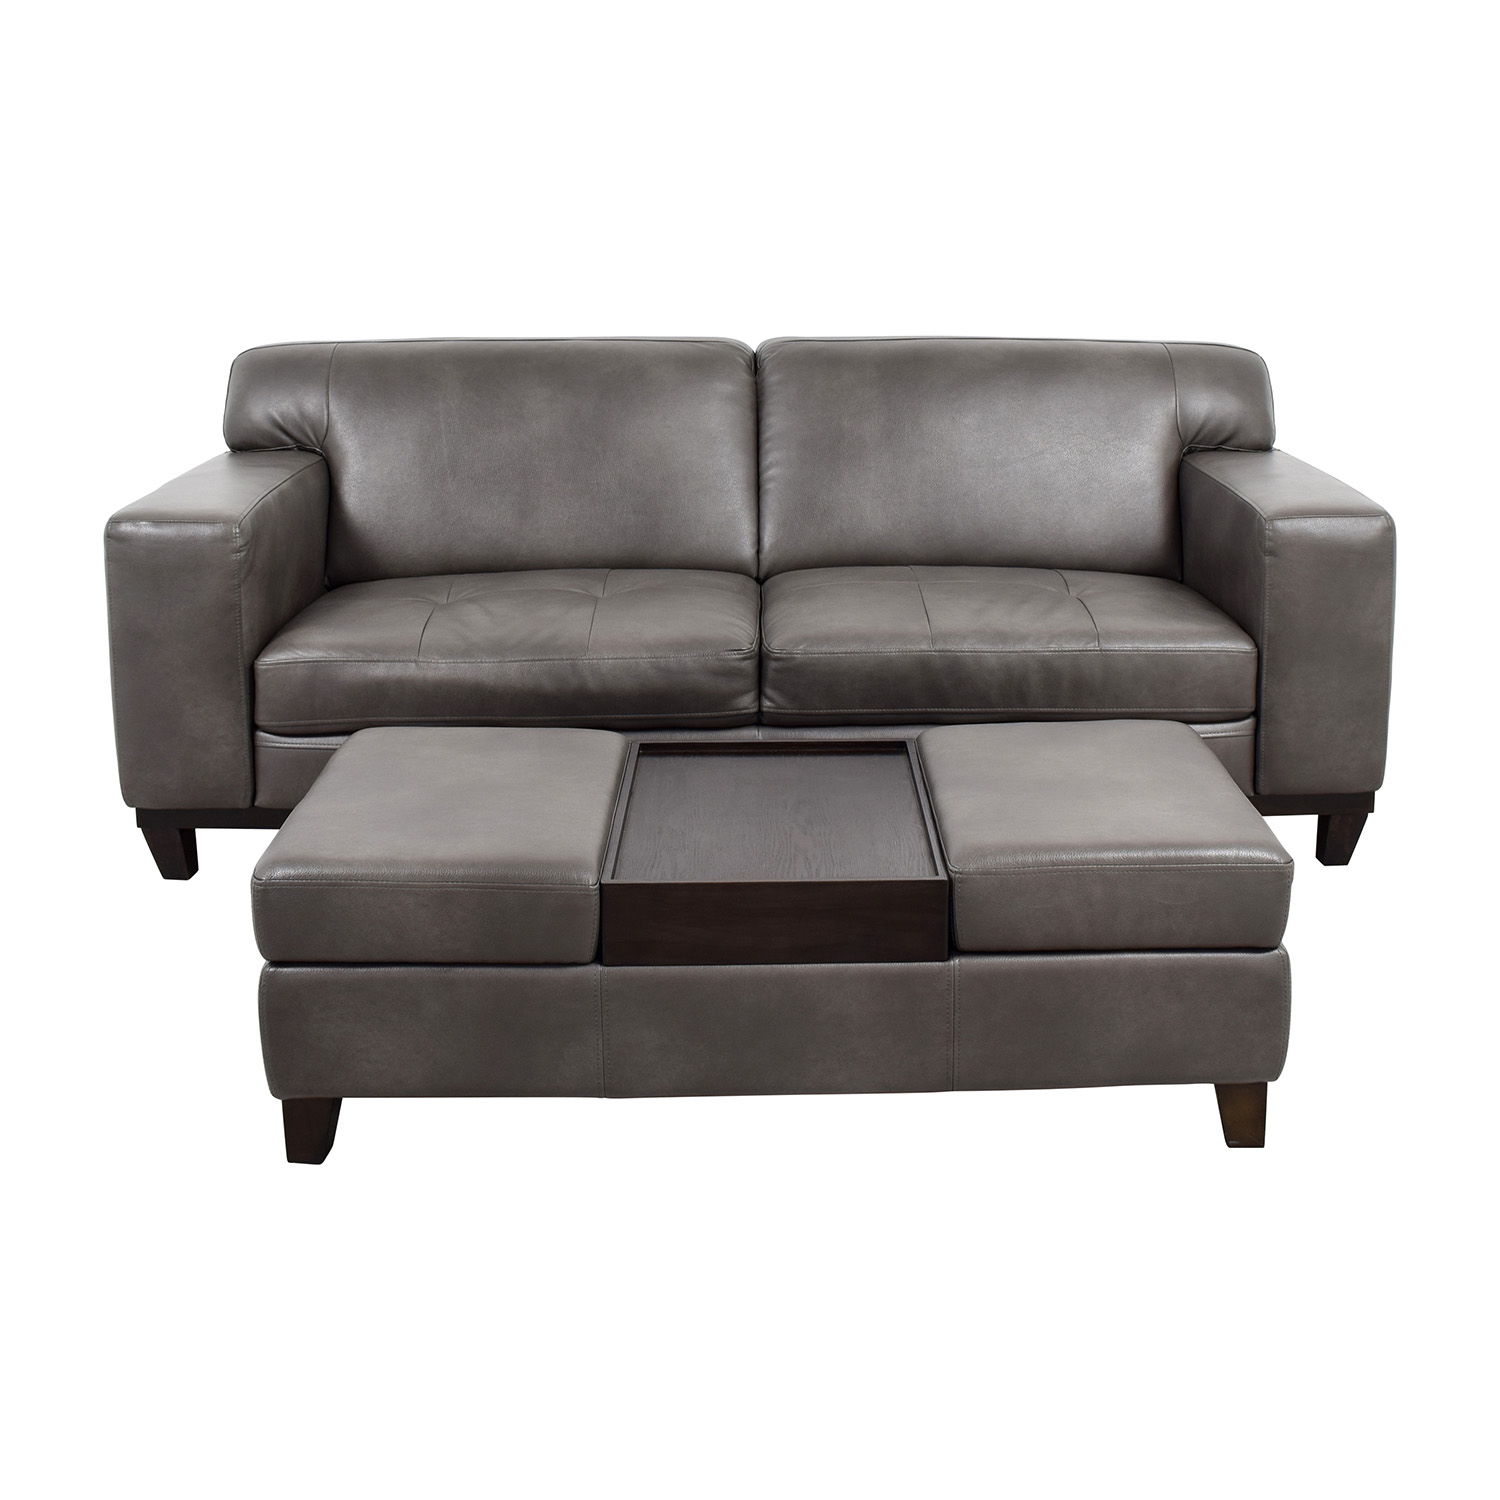 Raymour Flanigan Grey Leather Couch With Storage Ottoman